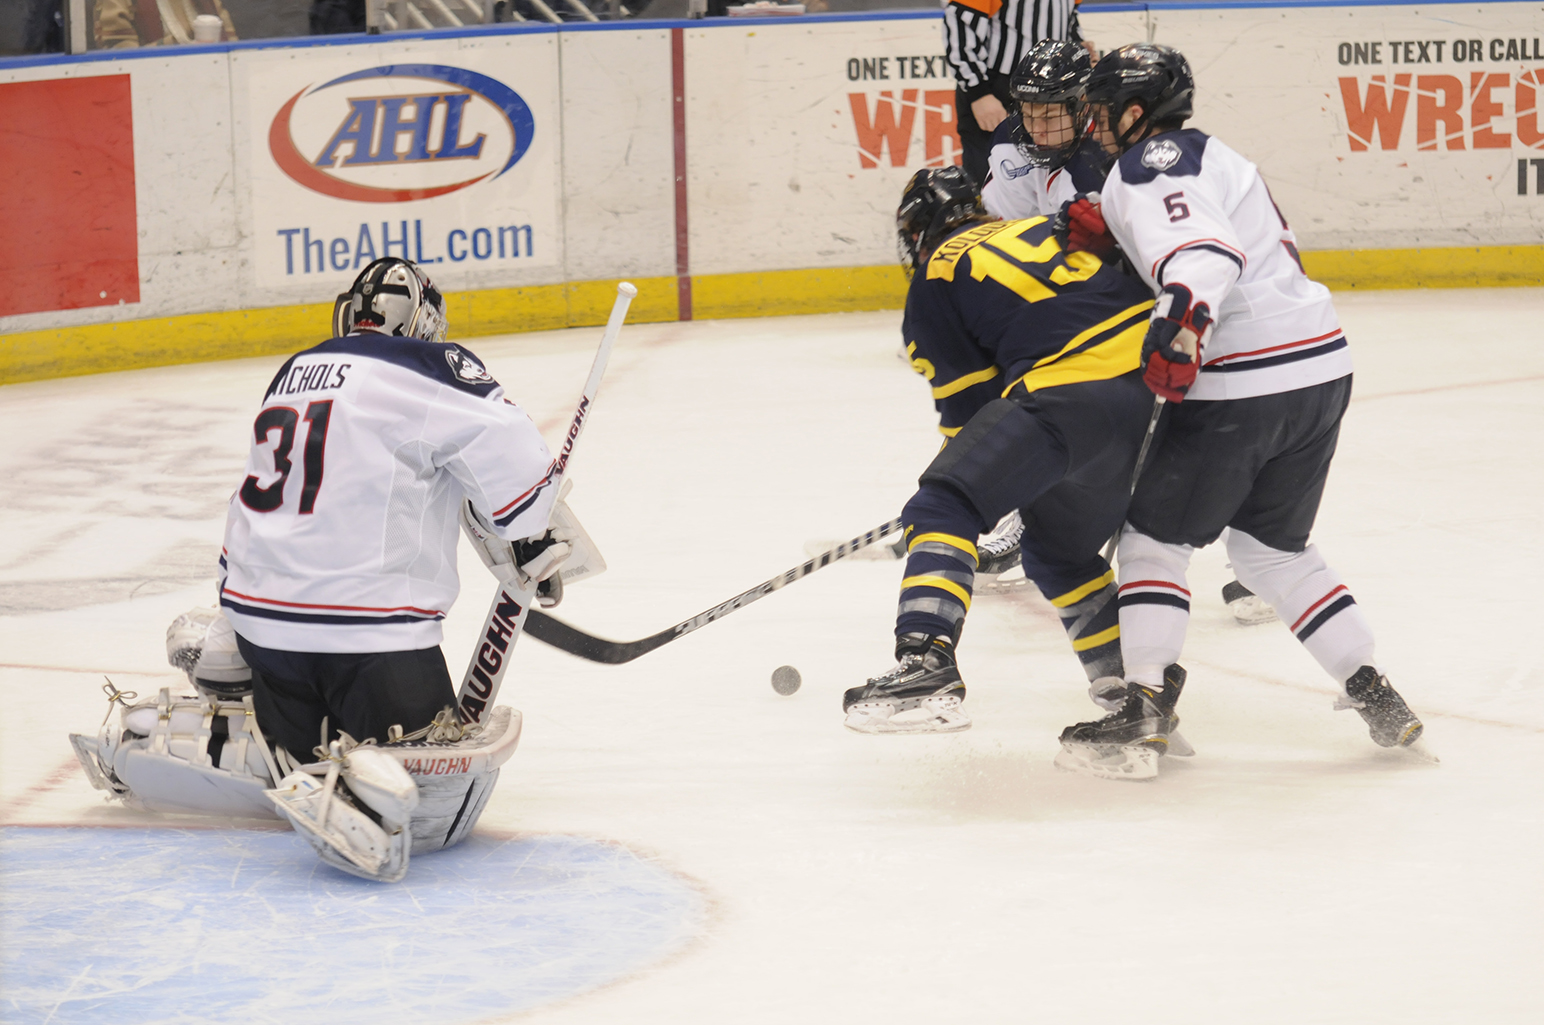 In this file photo, UConn goaltender Rob Nichols (31) goes down to make a save during the Huskies' game against Merrimack at XL Center in Hartford, Connecticut on Tuesday, Feb. 10, 2015. (File Photo/The Daily Campus)